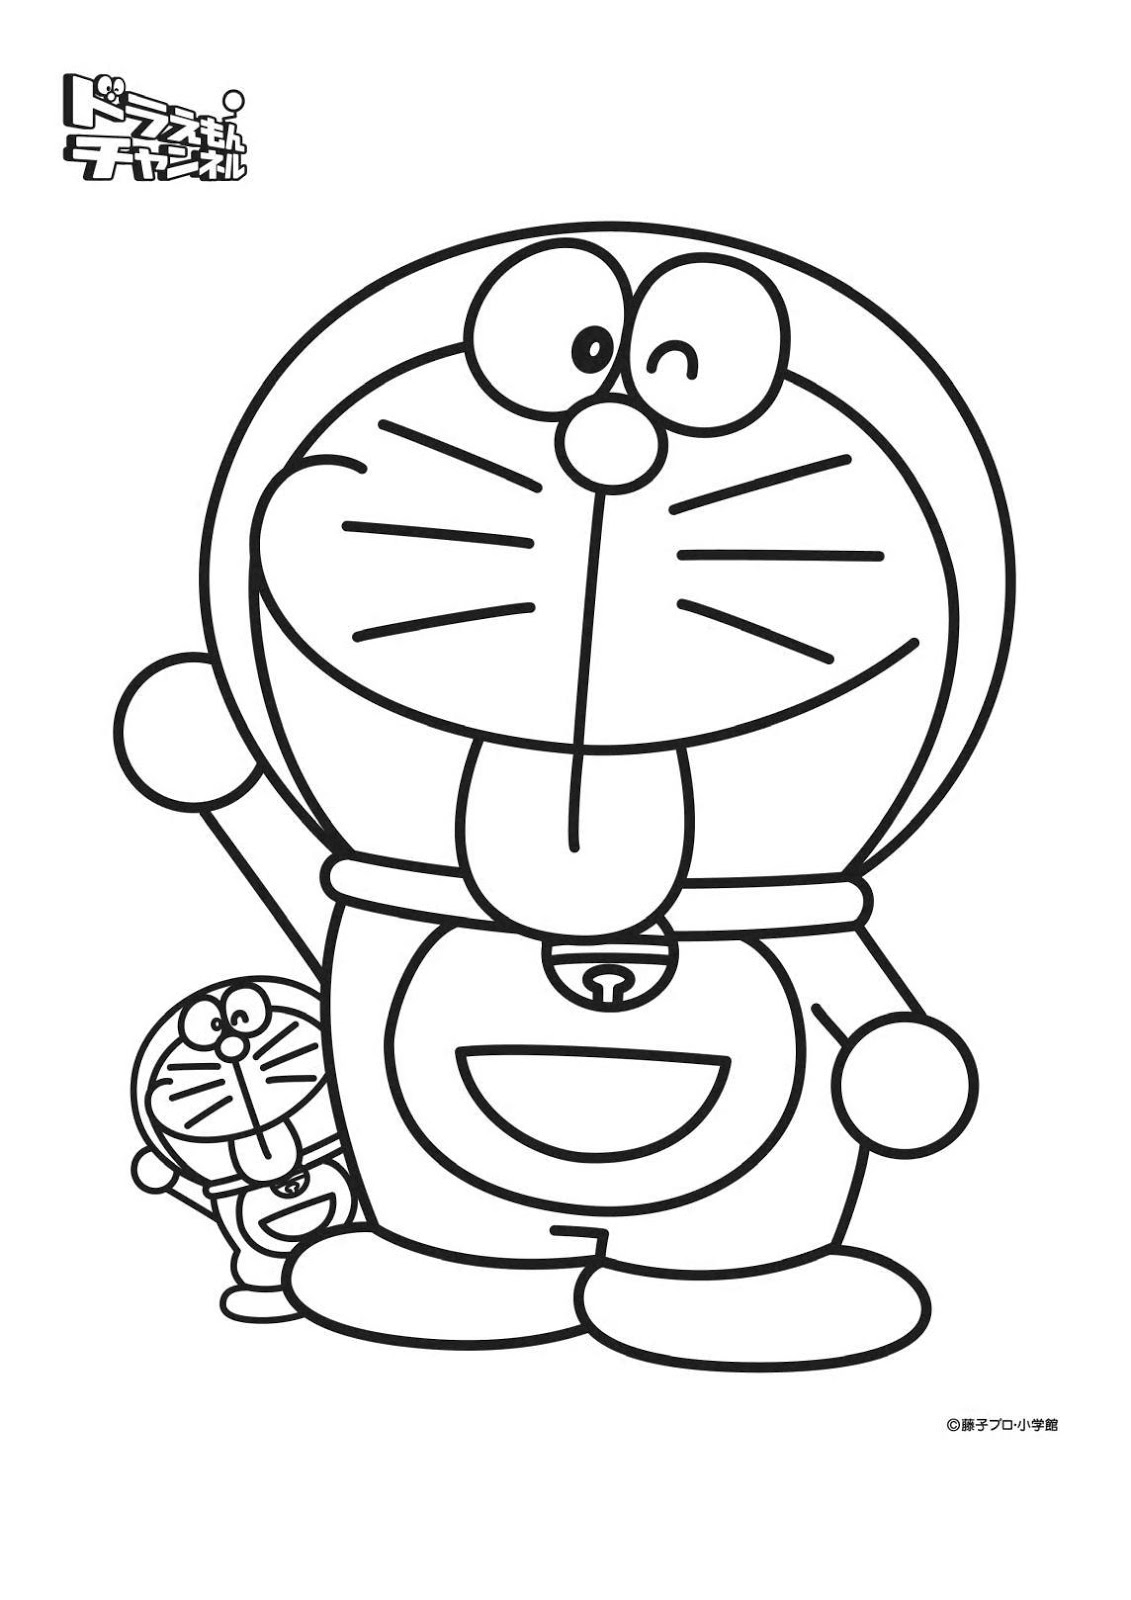 Coloring pages fun my melody coloring pages - Free Coloring Pages Of Hinh To Mau